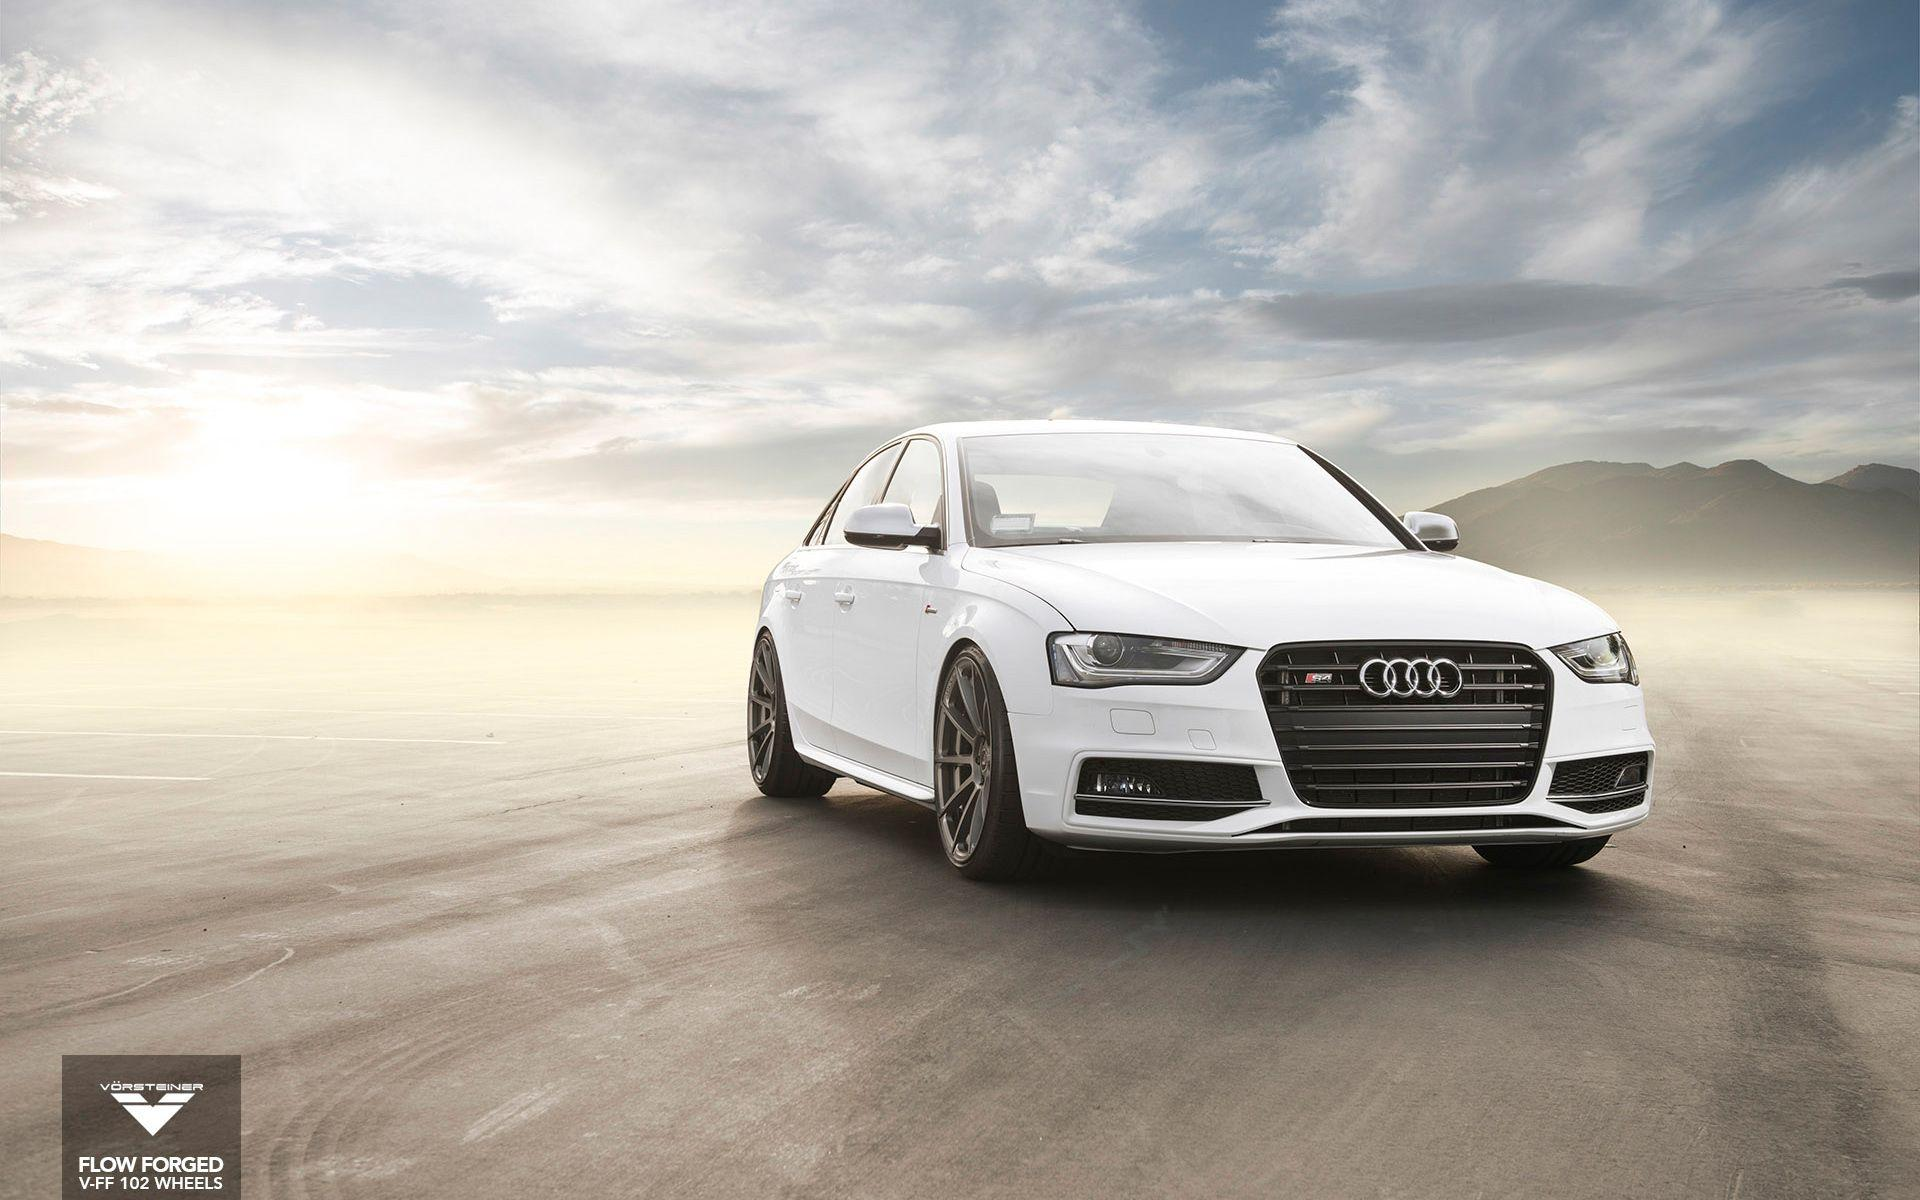 Audi S4 Wallpapers 4